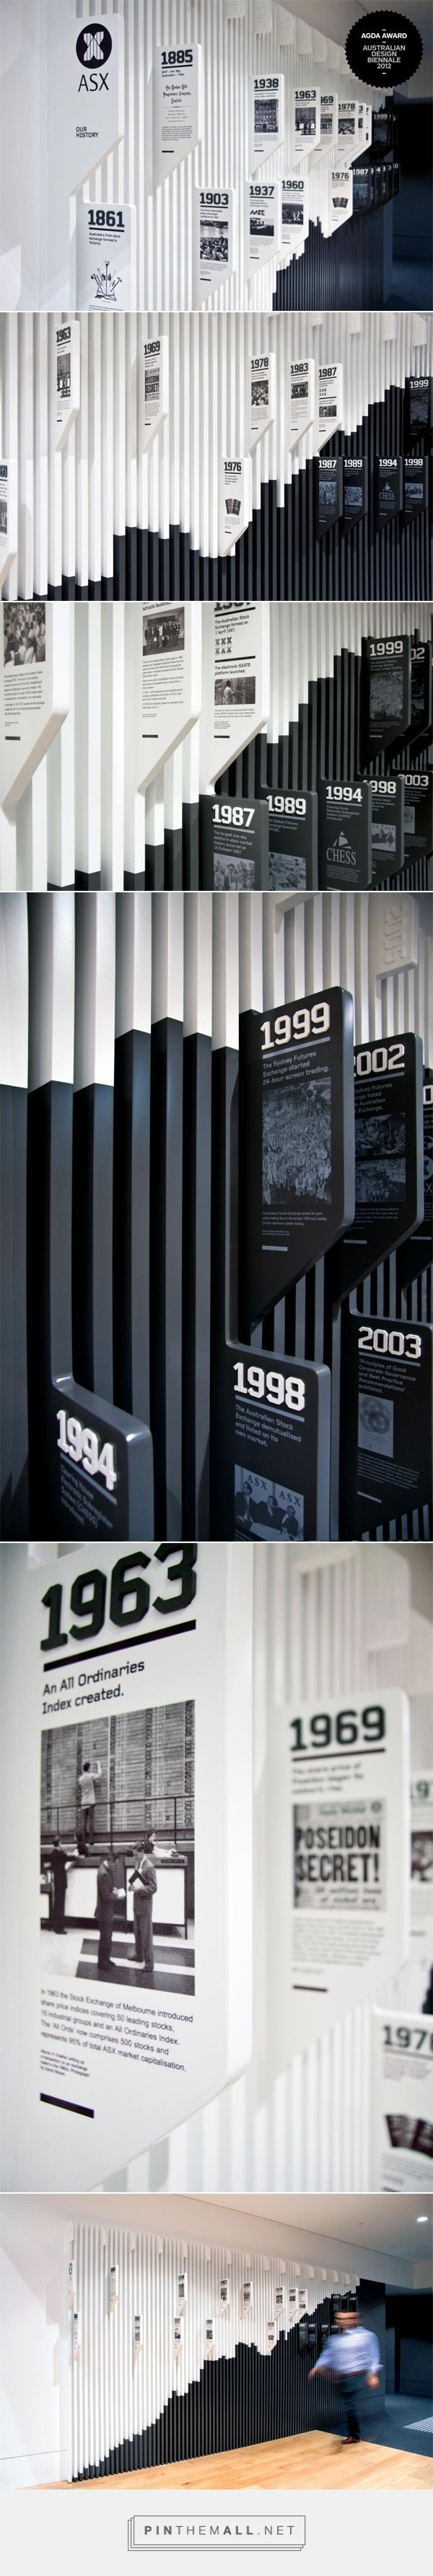 GRAPHIC AMBIENT » Blog Archive » ASX Timeline Wall, Australia - created via https://pinthemall.net